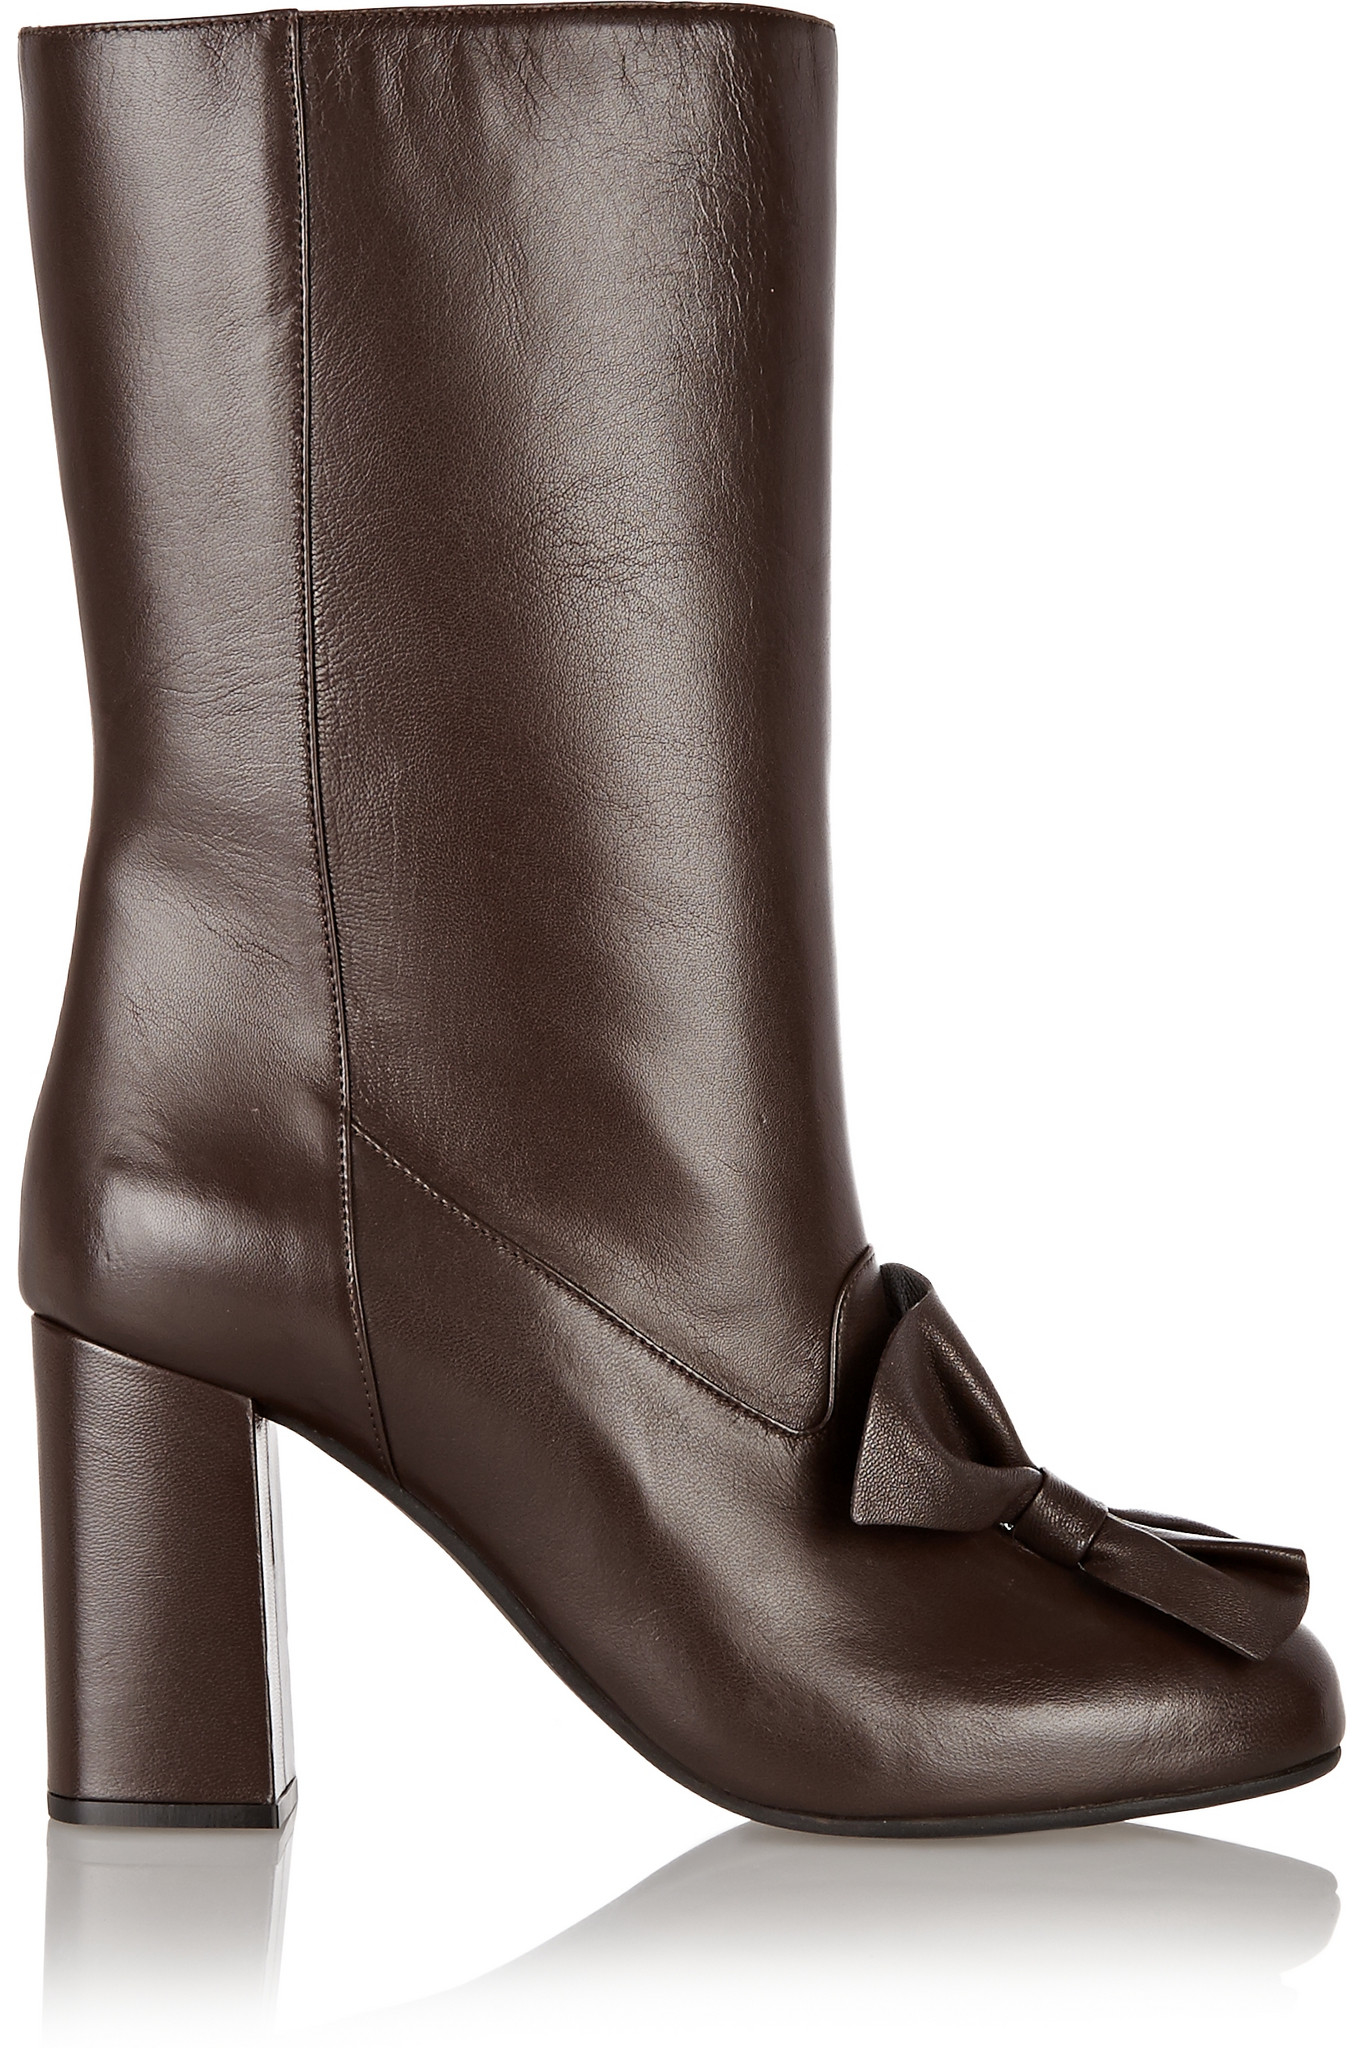 Pre-owned - Leather buckled boots Marni 9BTtw98q8